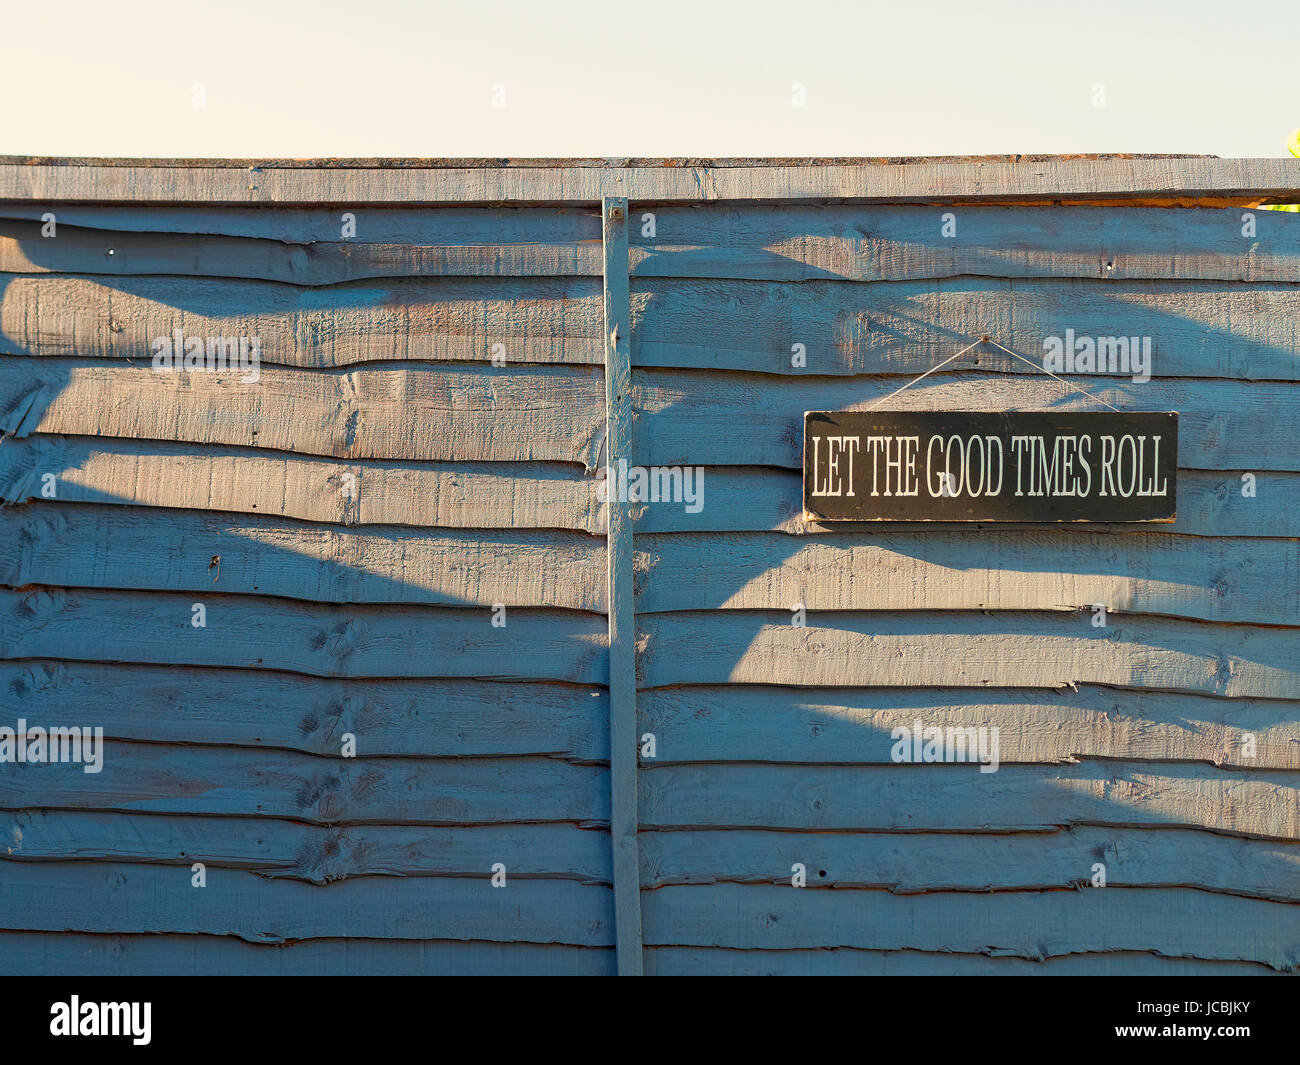 Let The Good Times Roll Sign hanging on a fence - Stock Image